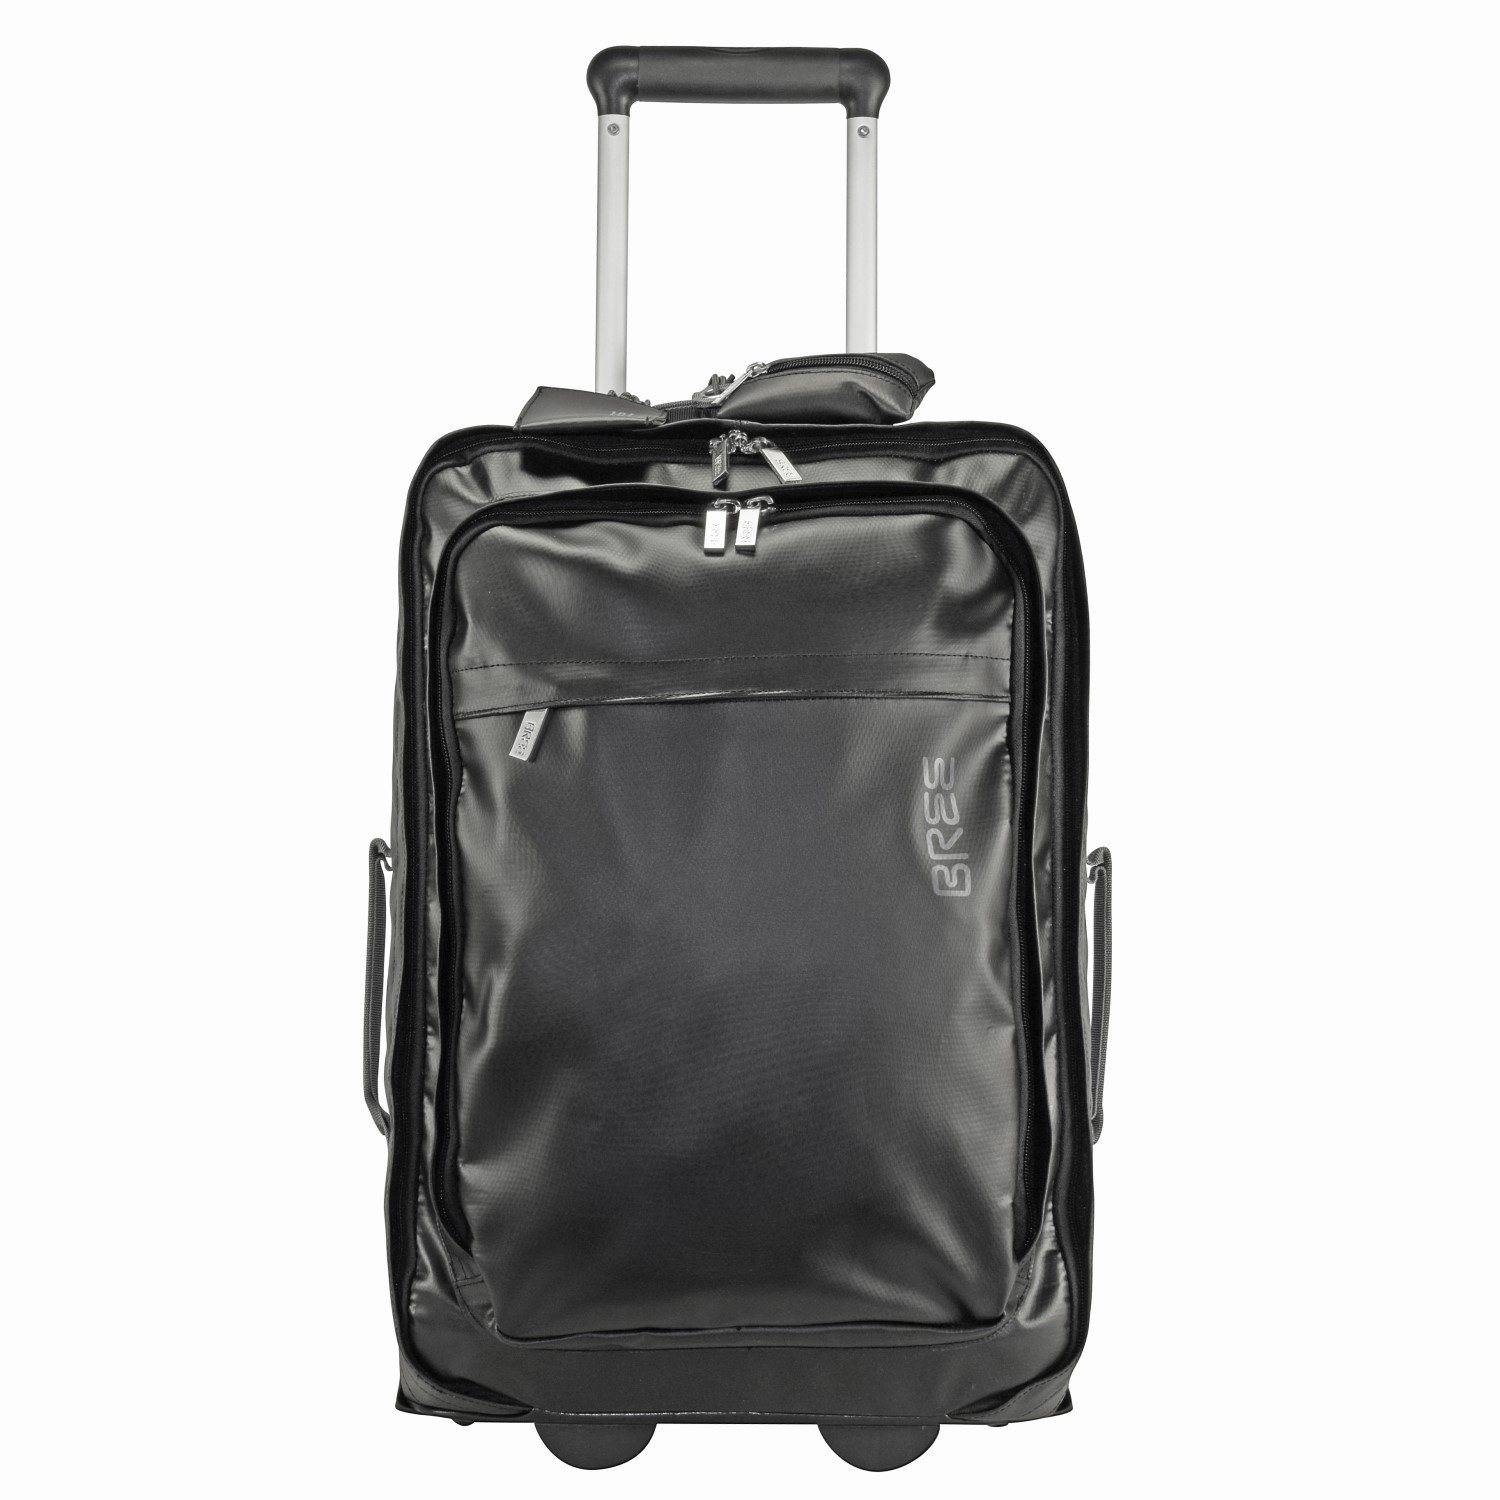 BREE Punch 90 2-Rollen Kabinentrolley 55 cm, black